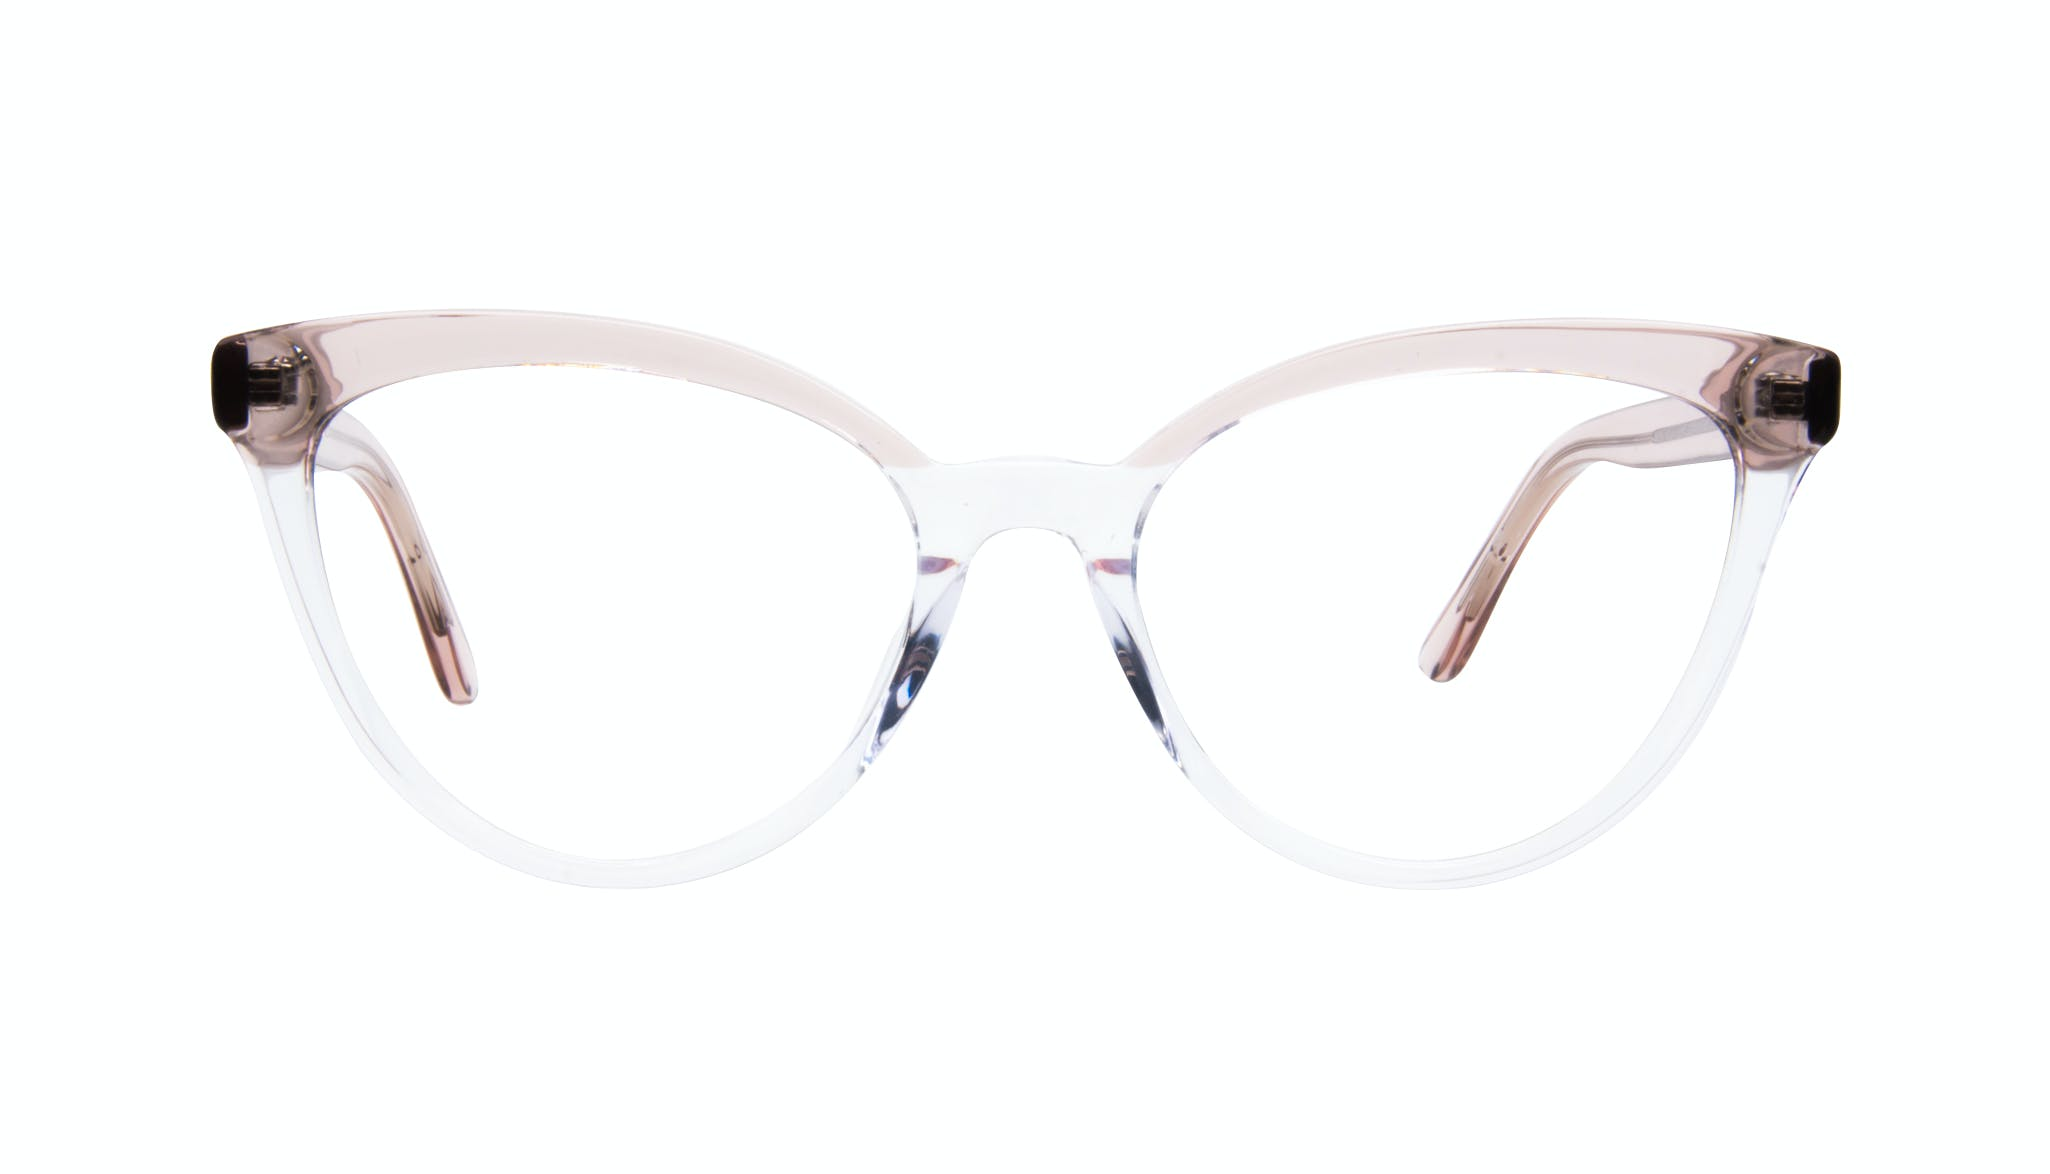 Affordable Fashion Glasses Cat Eye Daring Cateye Eyeglasses Women Reverie Clear rose